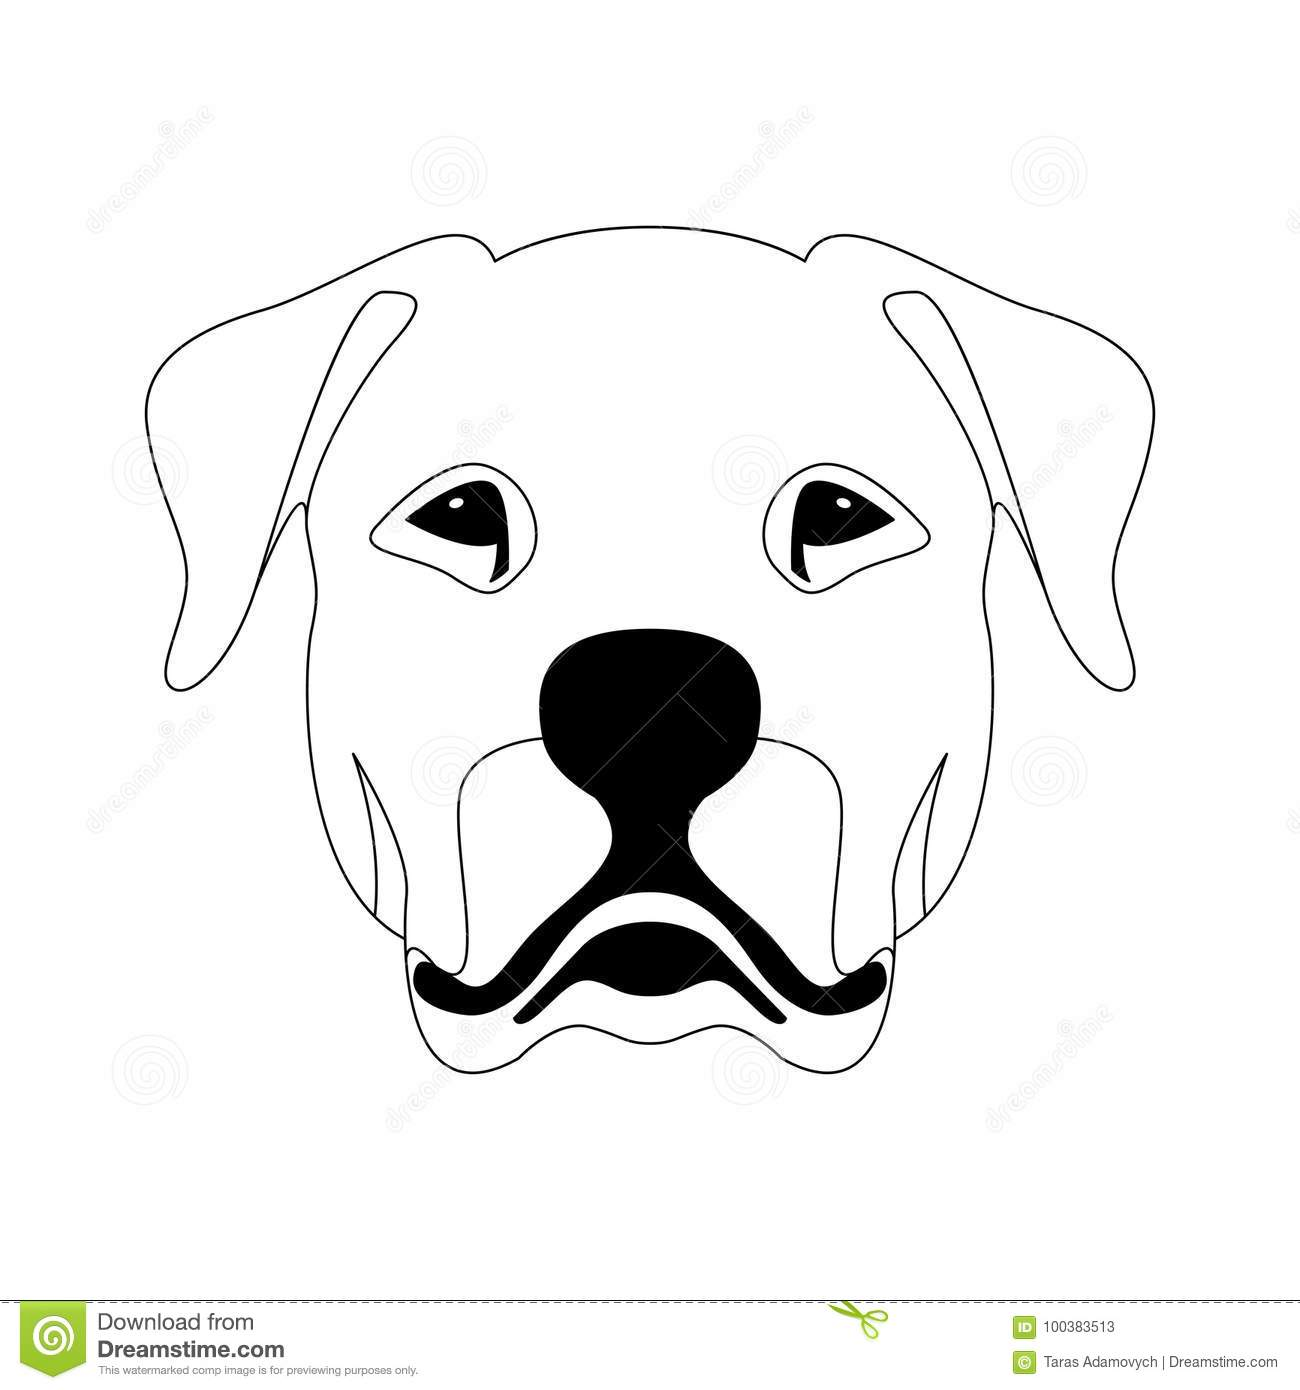 Line Drawing Of A Dog Face : Argentine dog face vector illustration line drawing stock